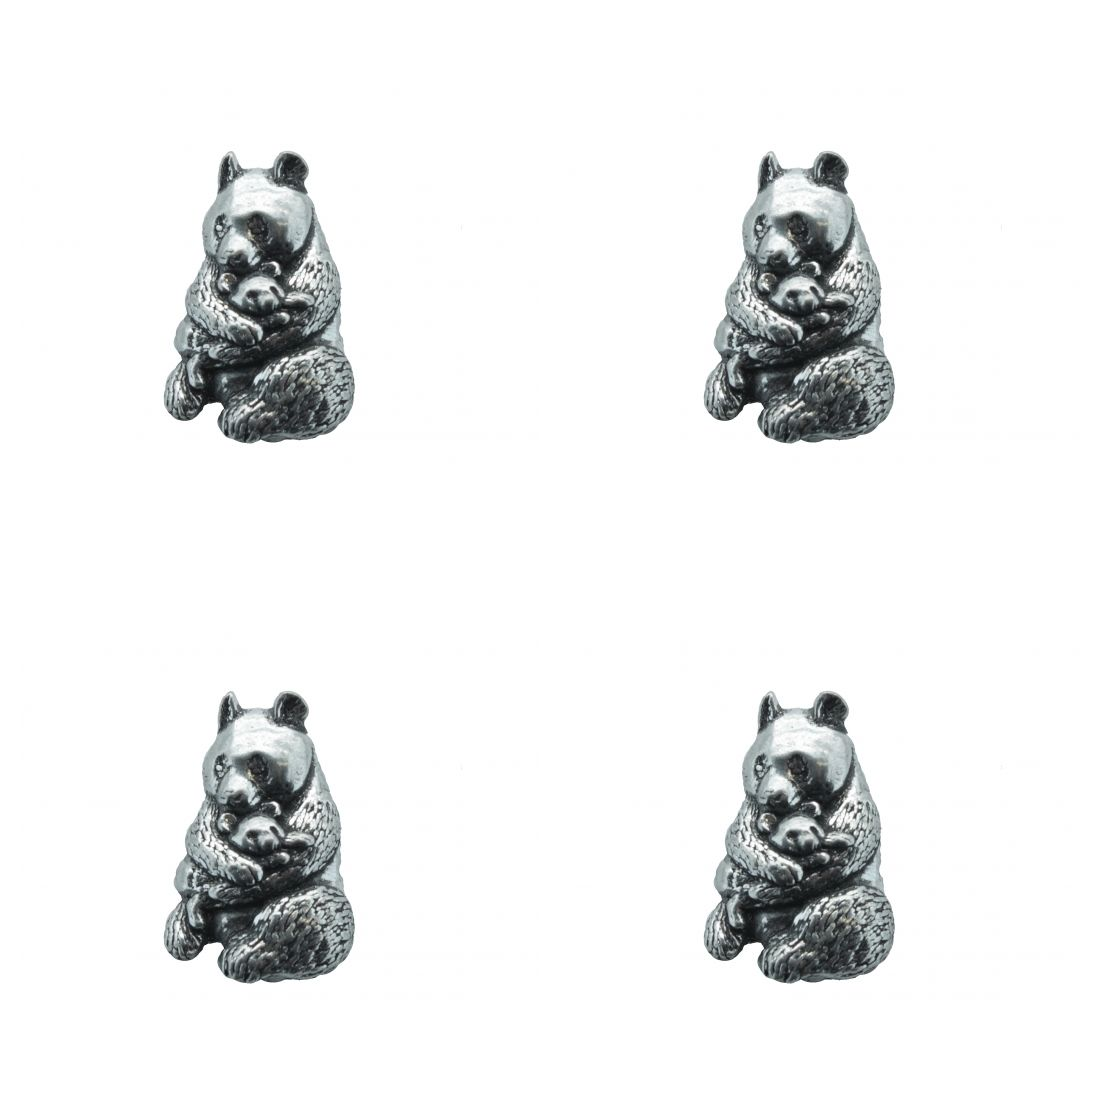 4x Pin Anstecker Badge Panda Bär, 1,7x1,6cm